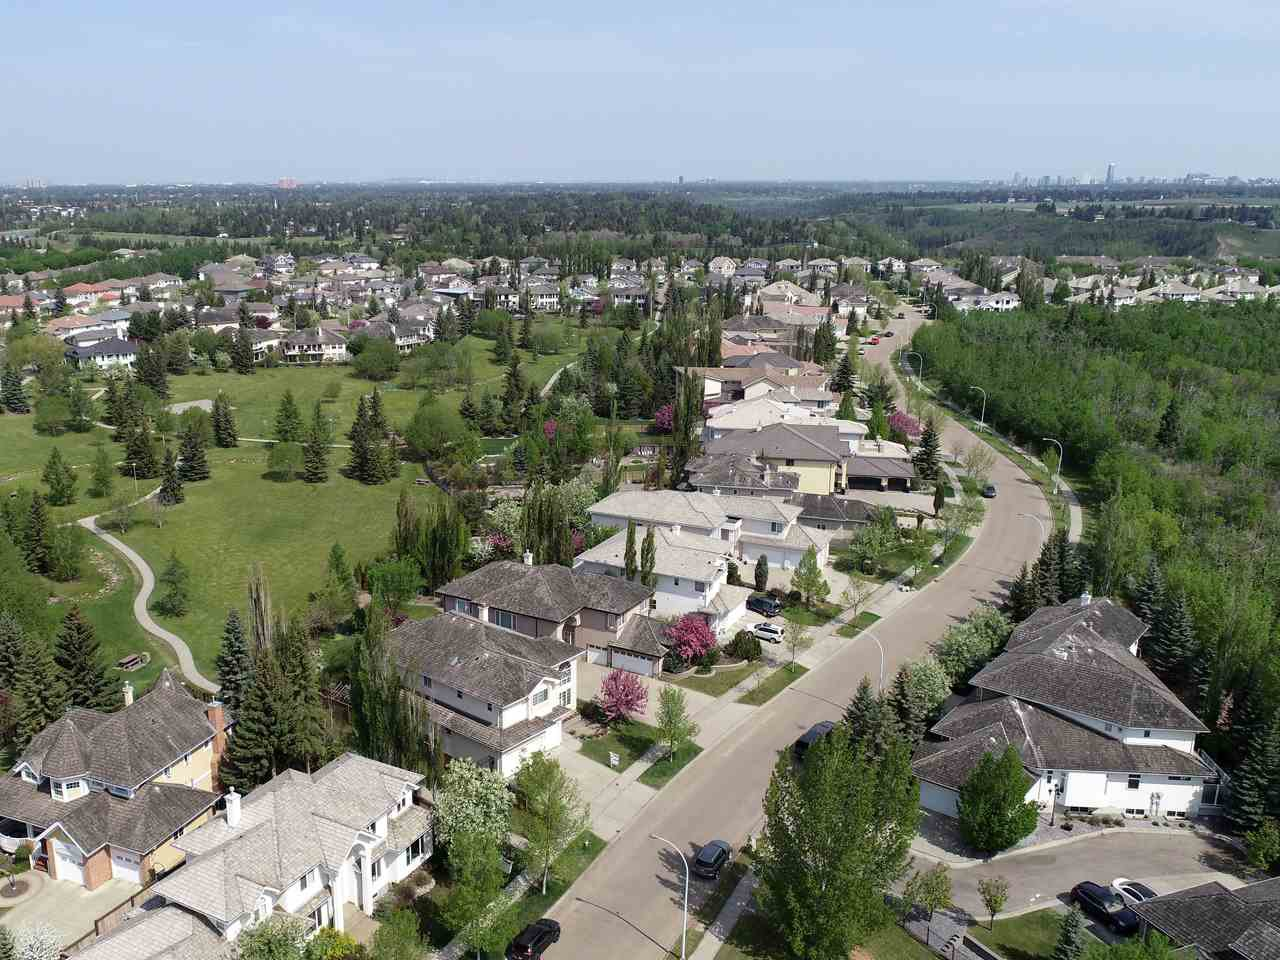 Main Photo: 730 BUTTERWORTH Drive in Edmonton: Zone 14 House for sale : MLS®# E4169977